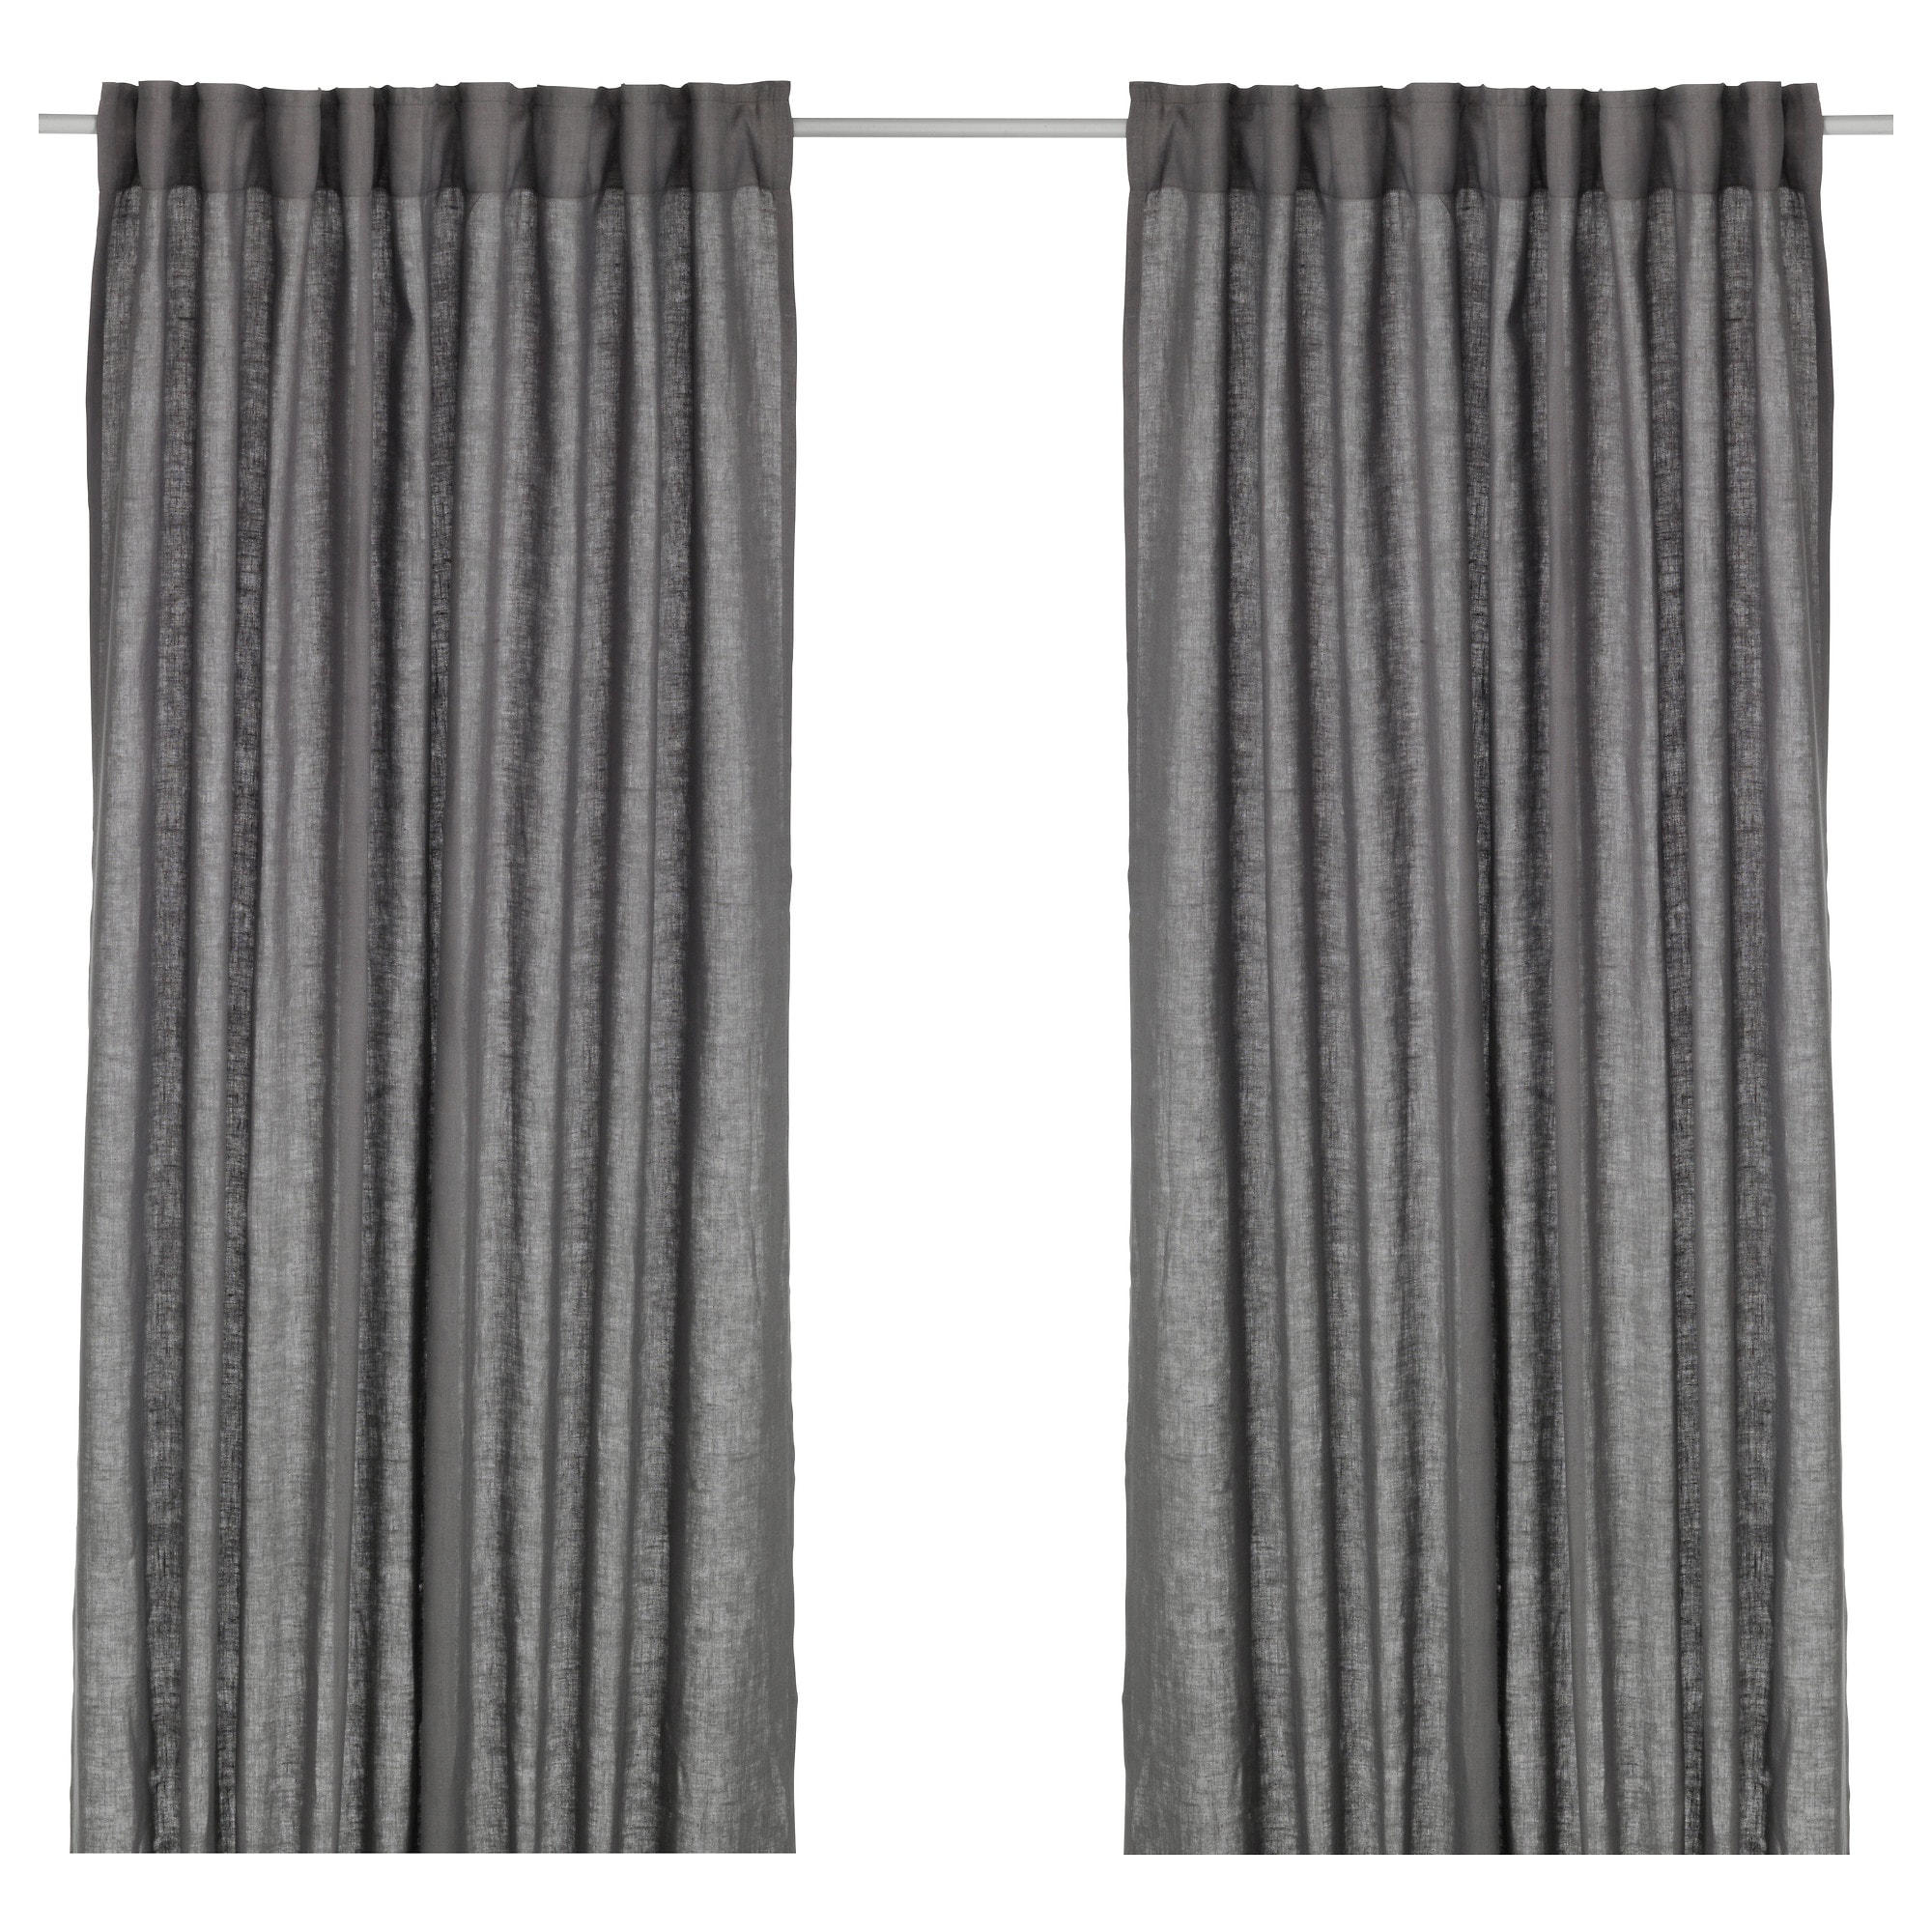 Grey curtains living room - Aina Curtains 1 Pair Dark Gray Length 98 Width 57